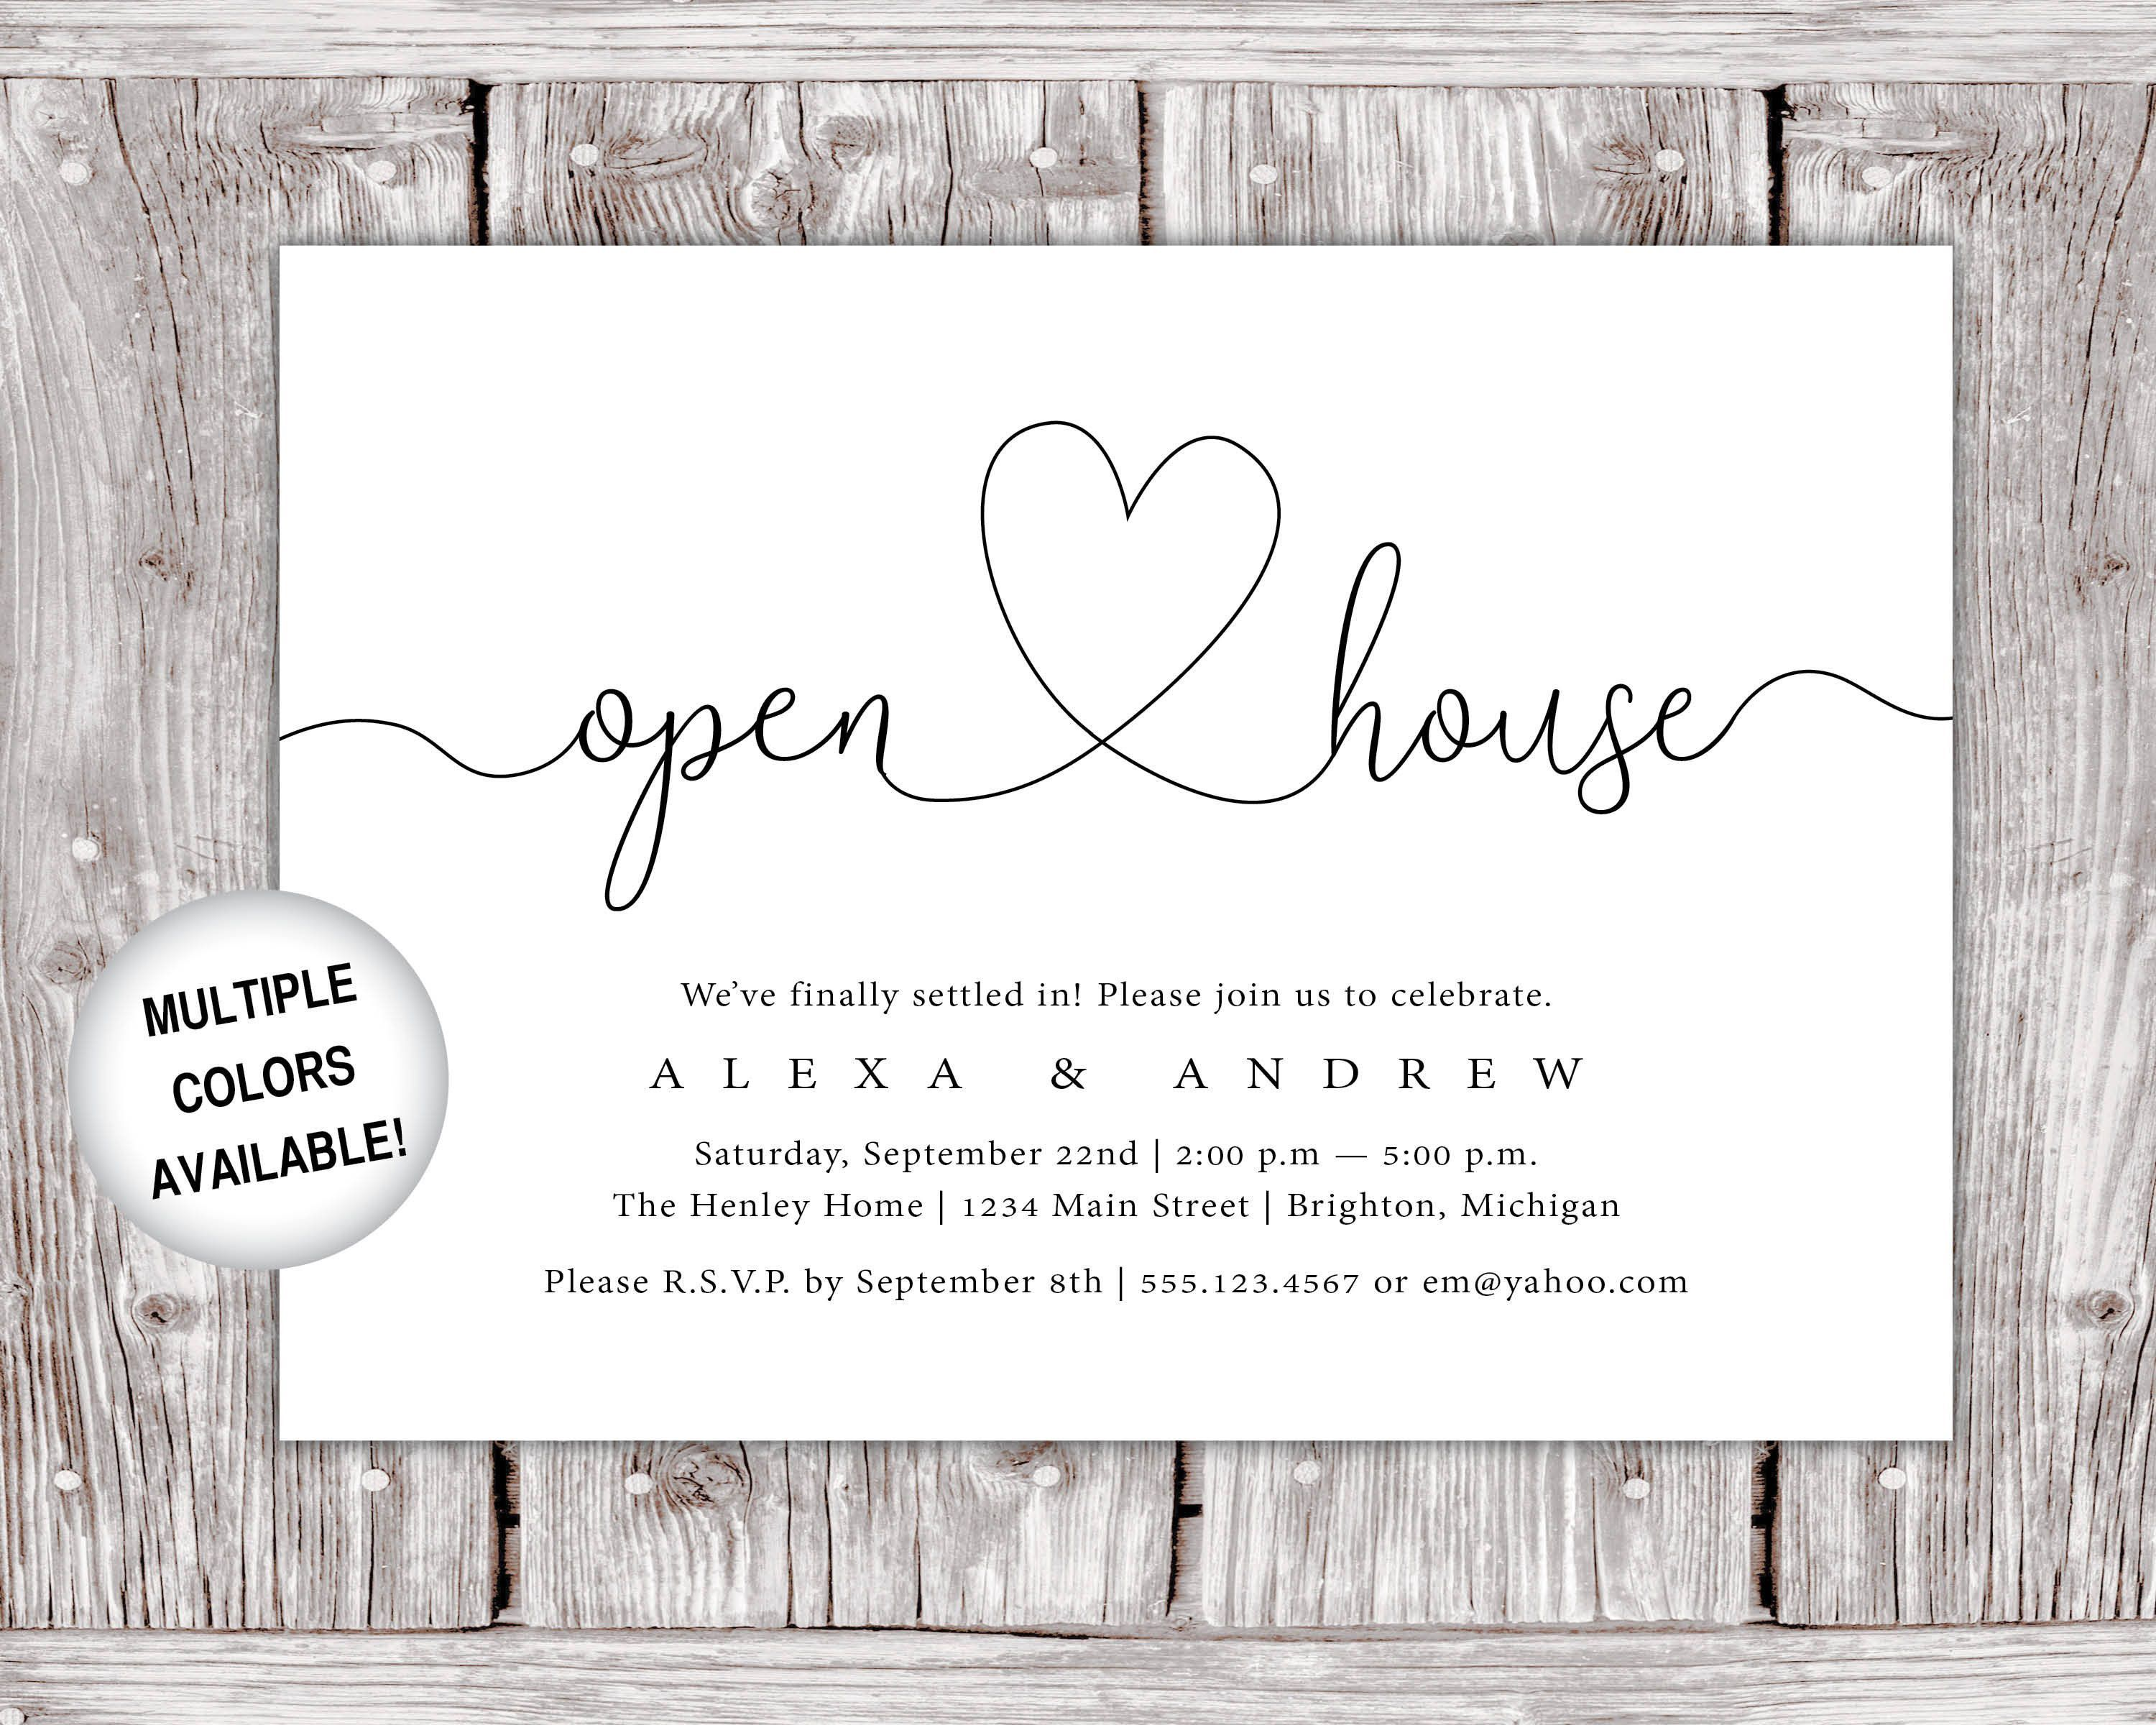 009 Breathtaking Open House Invite Template Inspiration  Templates Party InvitationFull